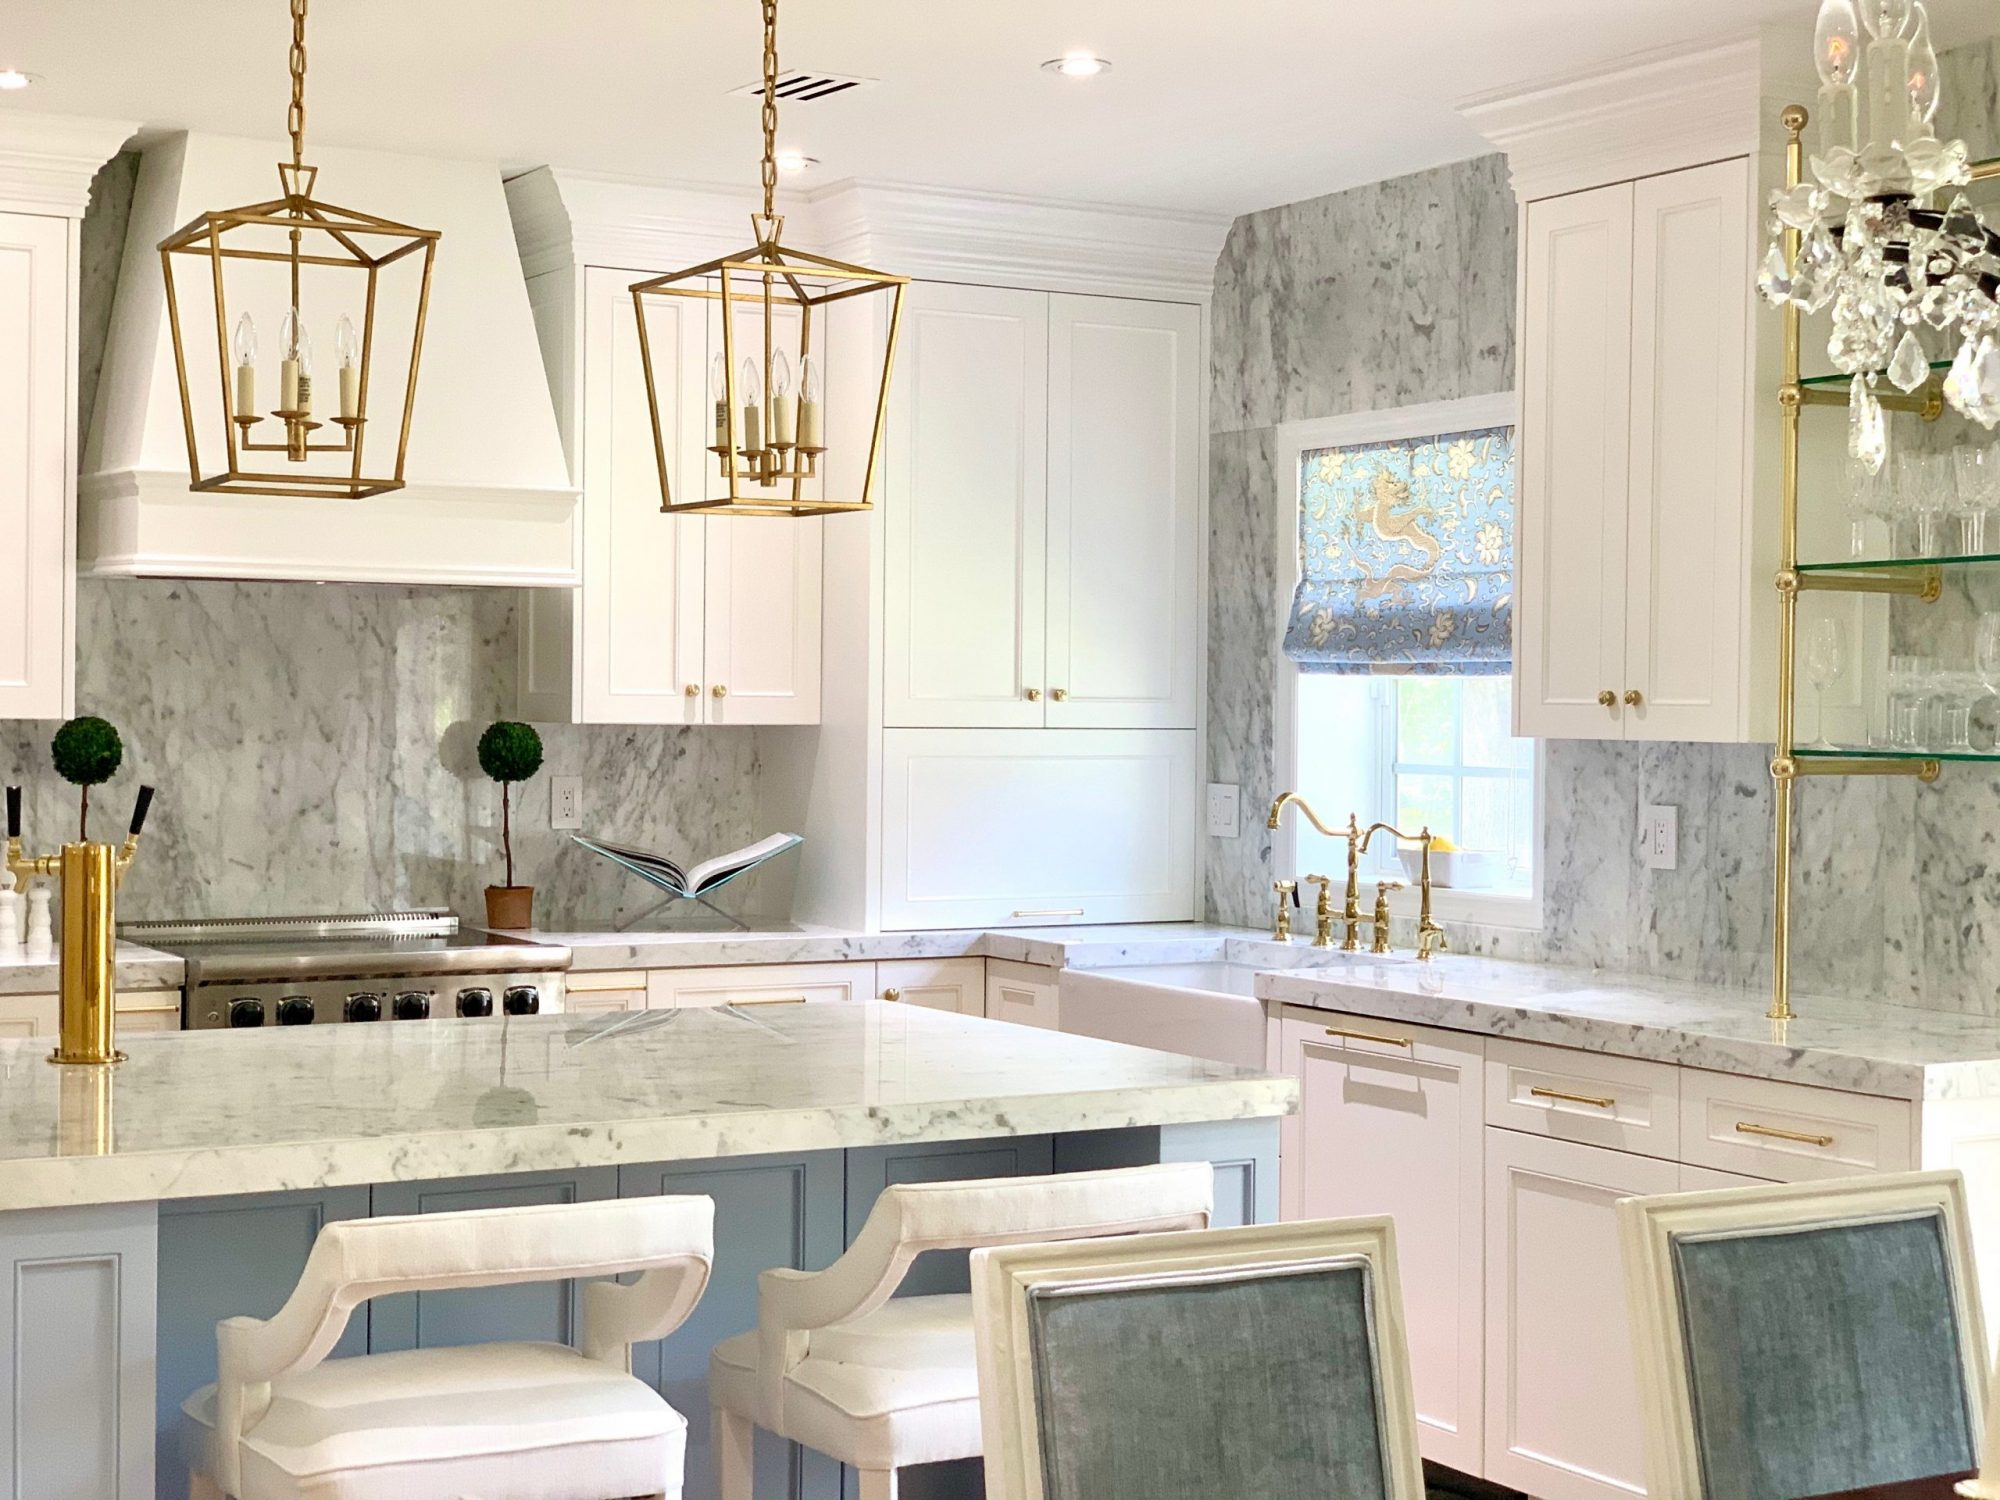 Supplier of the Best Quartz Countertops and Slabs - Granite - Marble - Quartzite for Miami and the Caribbean